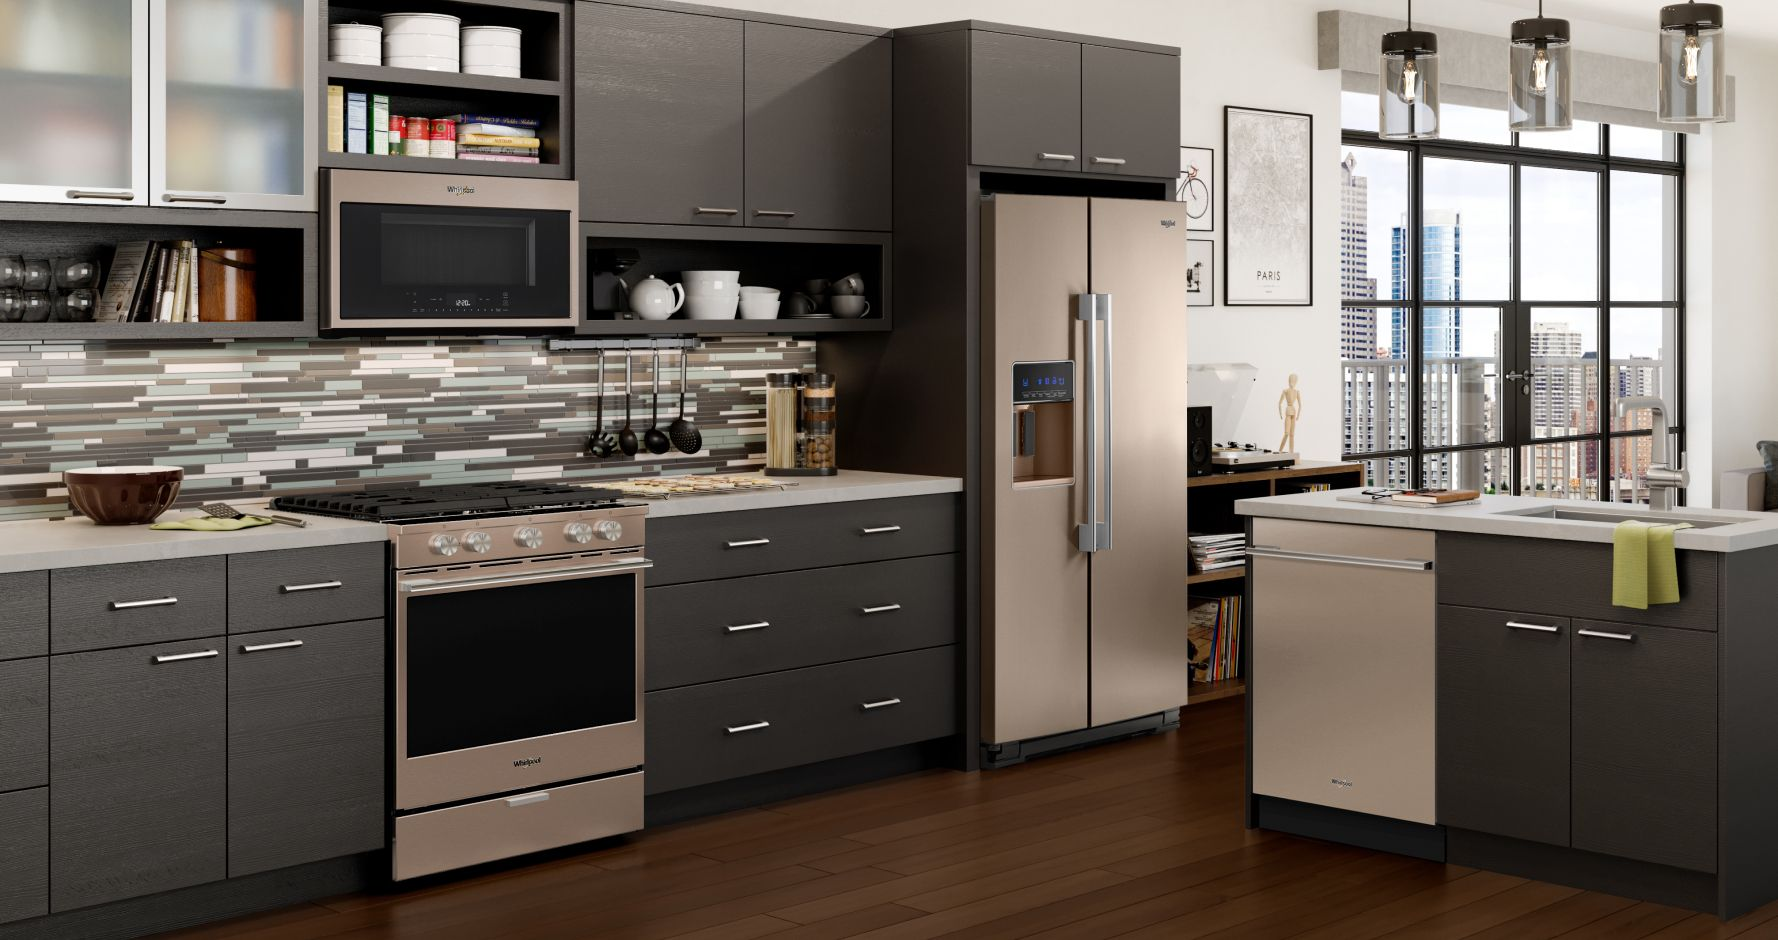 Kitchen | Whirlpool on small cafe kitchen, small continental kitchen, small french kitchen, small diner kitchen, small european kitchen, small catering kitchen, small mediterranean kitchen, small italian kitchen, small bistro kitchen, small german kitchen, small church kitchen, small indian kitchen, small pub kitchen, small office kitchen, small dining room kitchen, small home kitchen, small family room kitchen, small greek kitchen, coffee theme kitchen, small chinese kitchen,